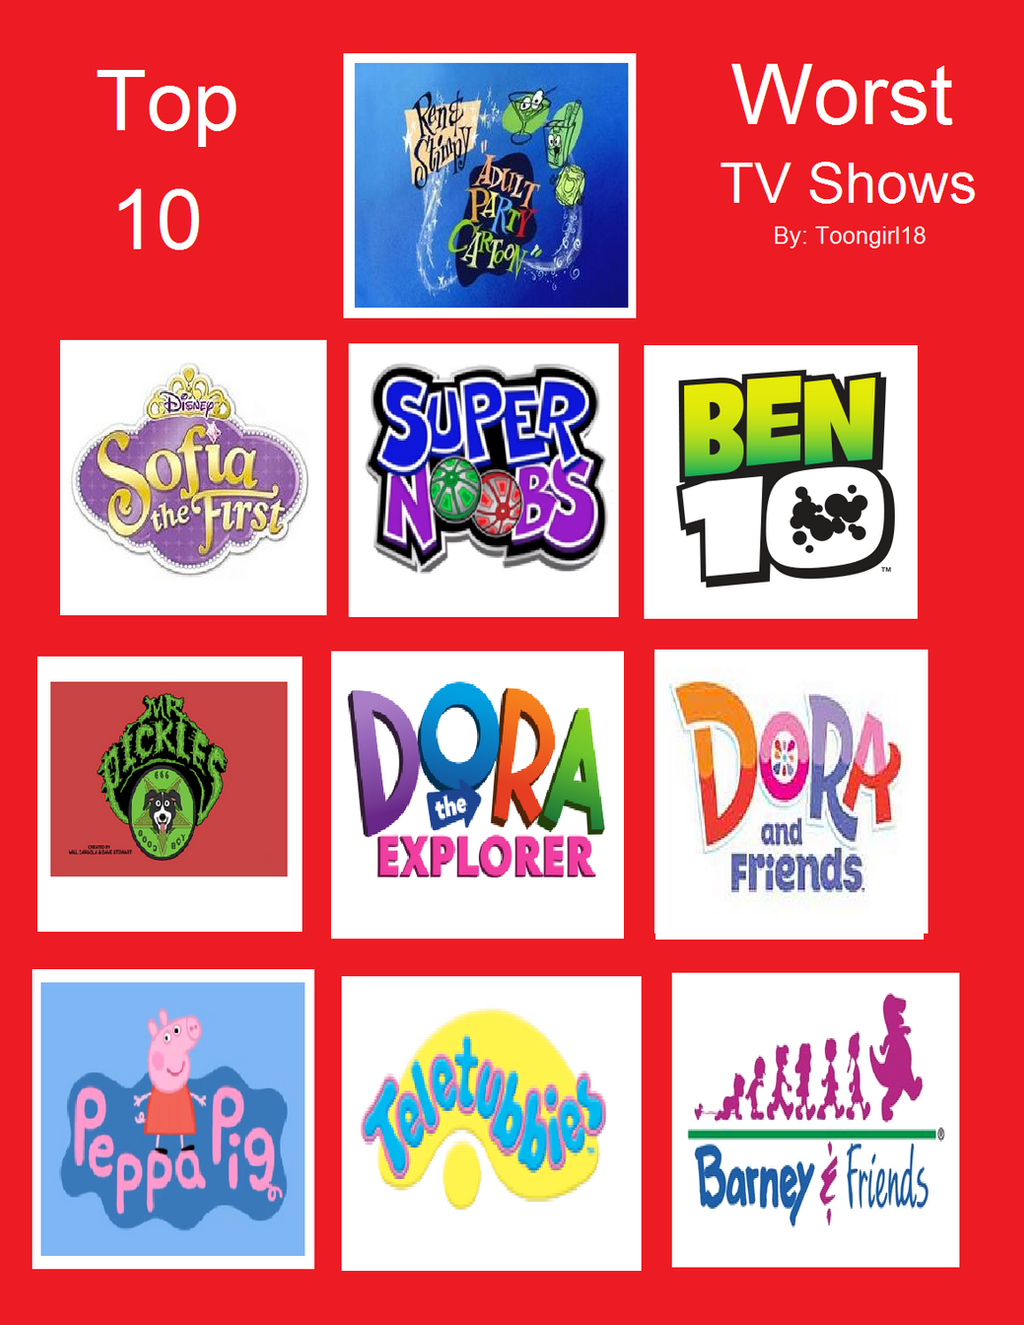 Top 10 worst tv shows by lygiamidori on deviantart for Craft shows on tv